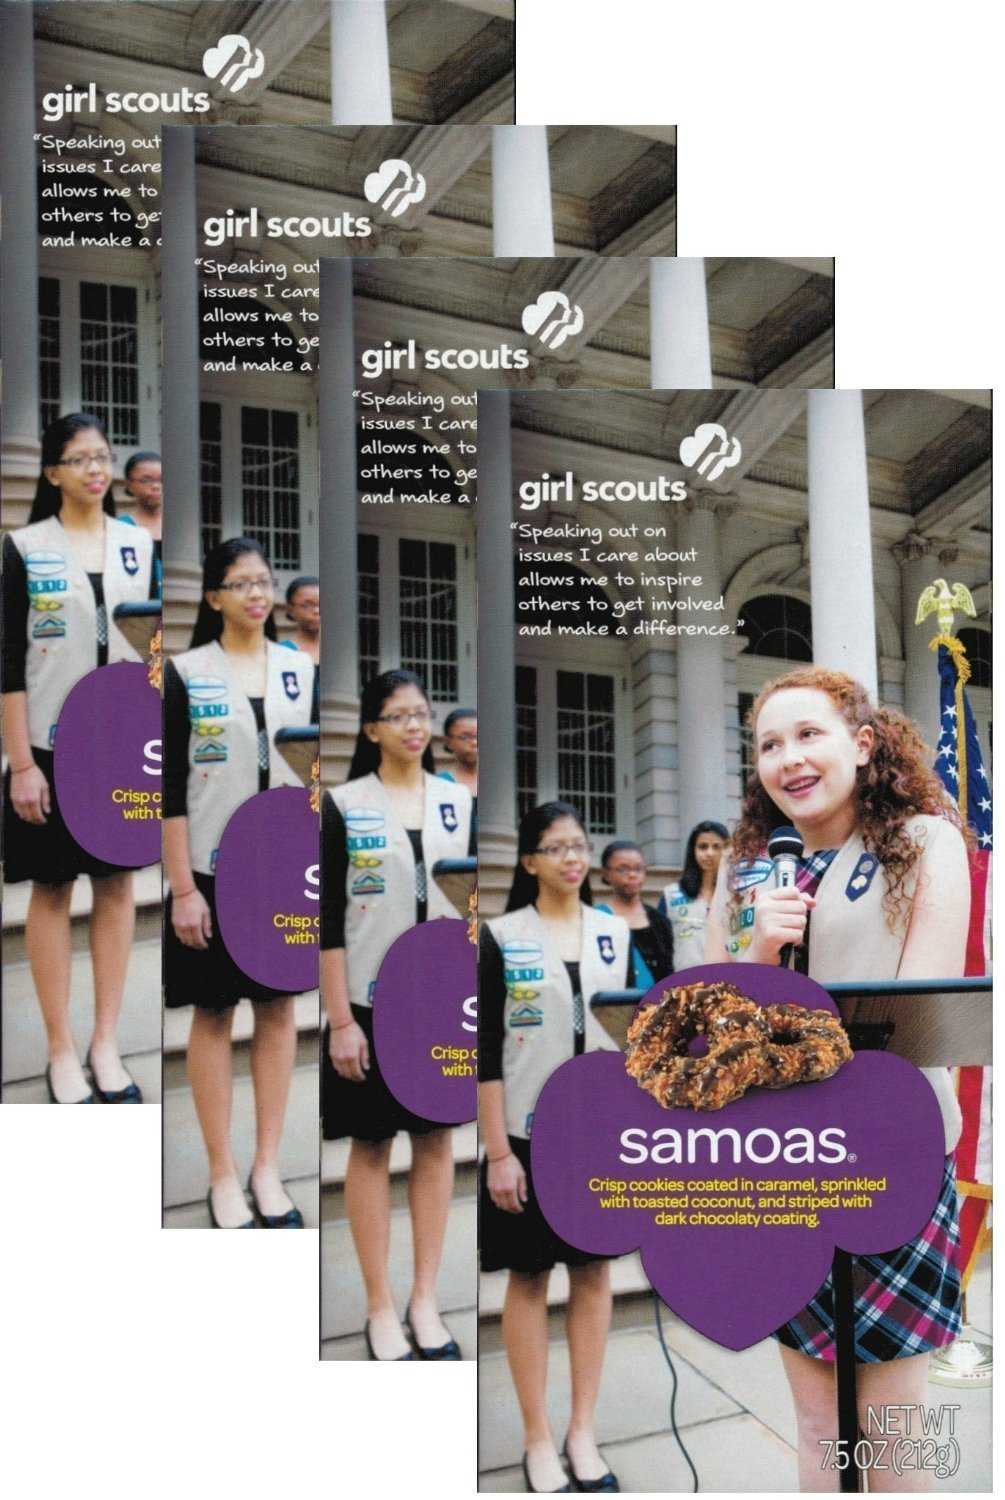 Girl Scout Cookies * Samoas (1) CASE - 12 Boxes of Cookies